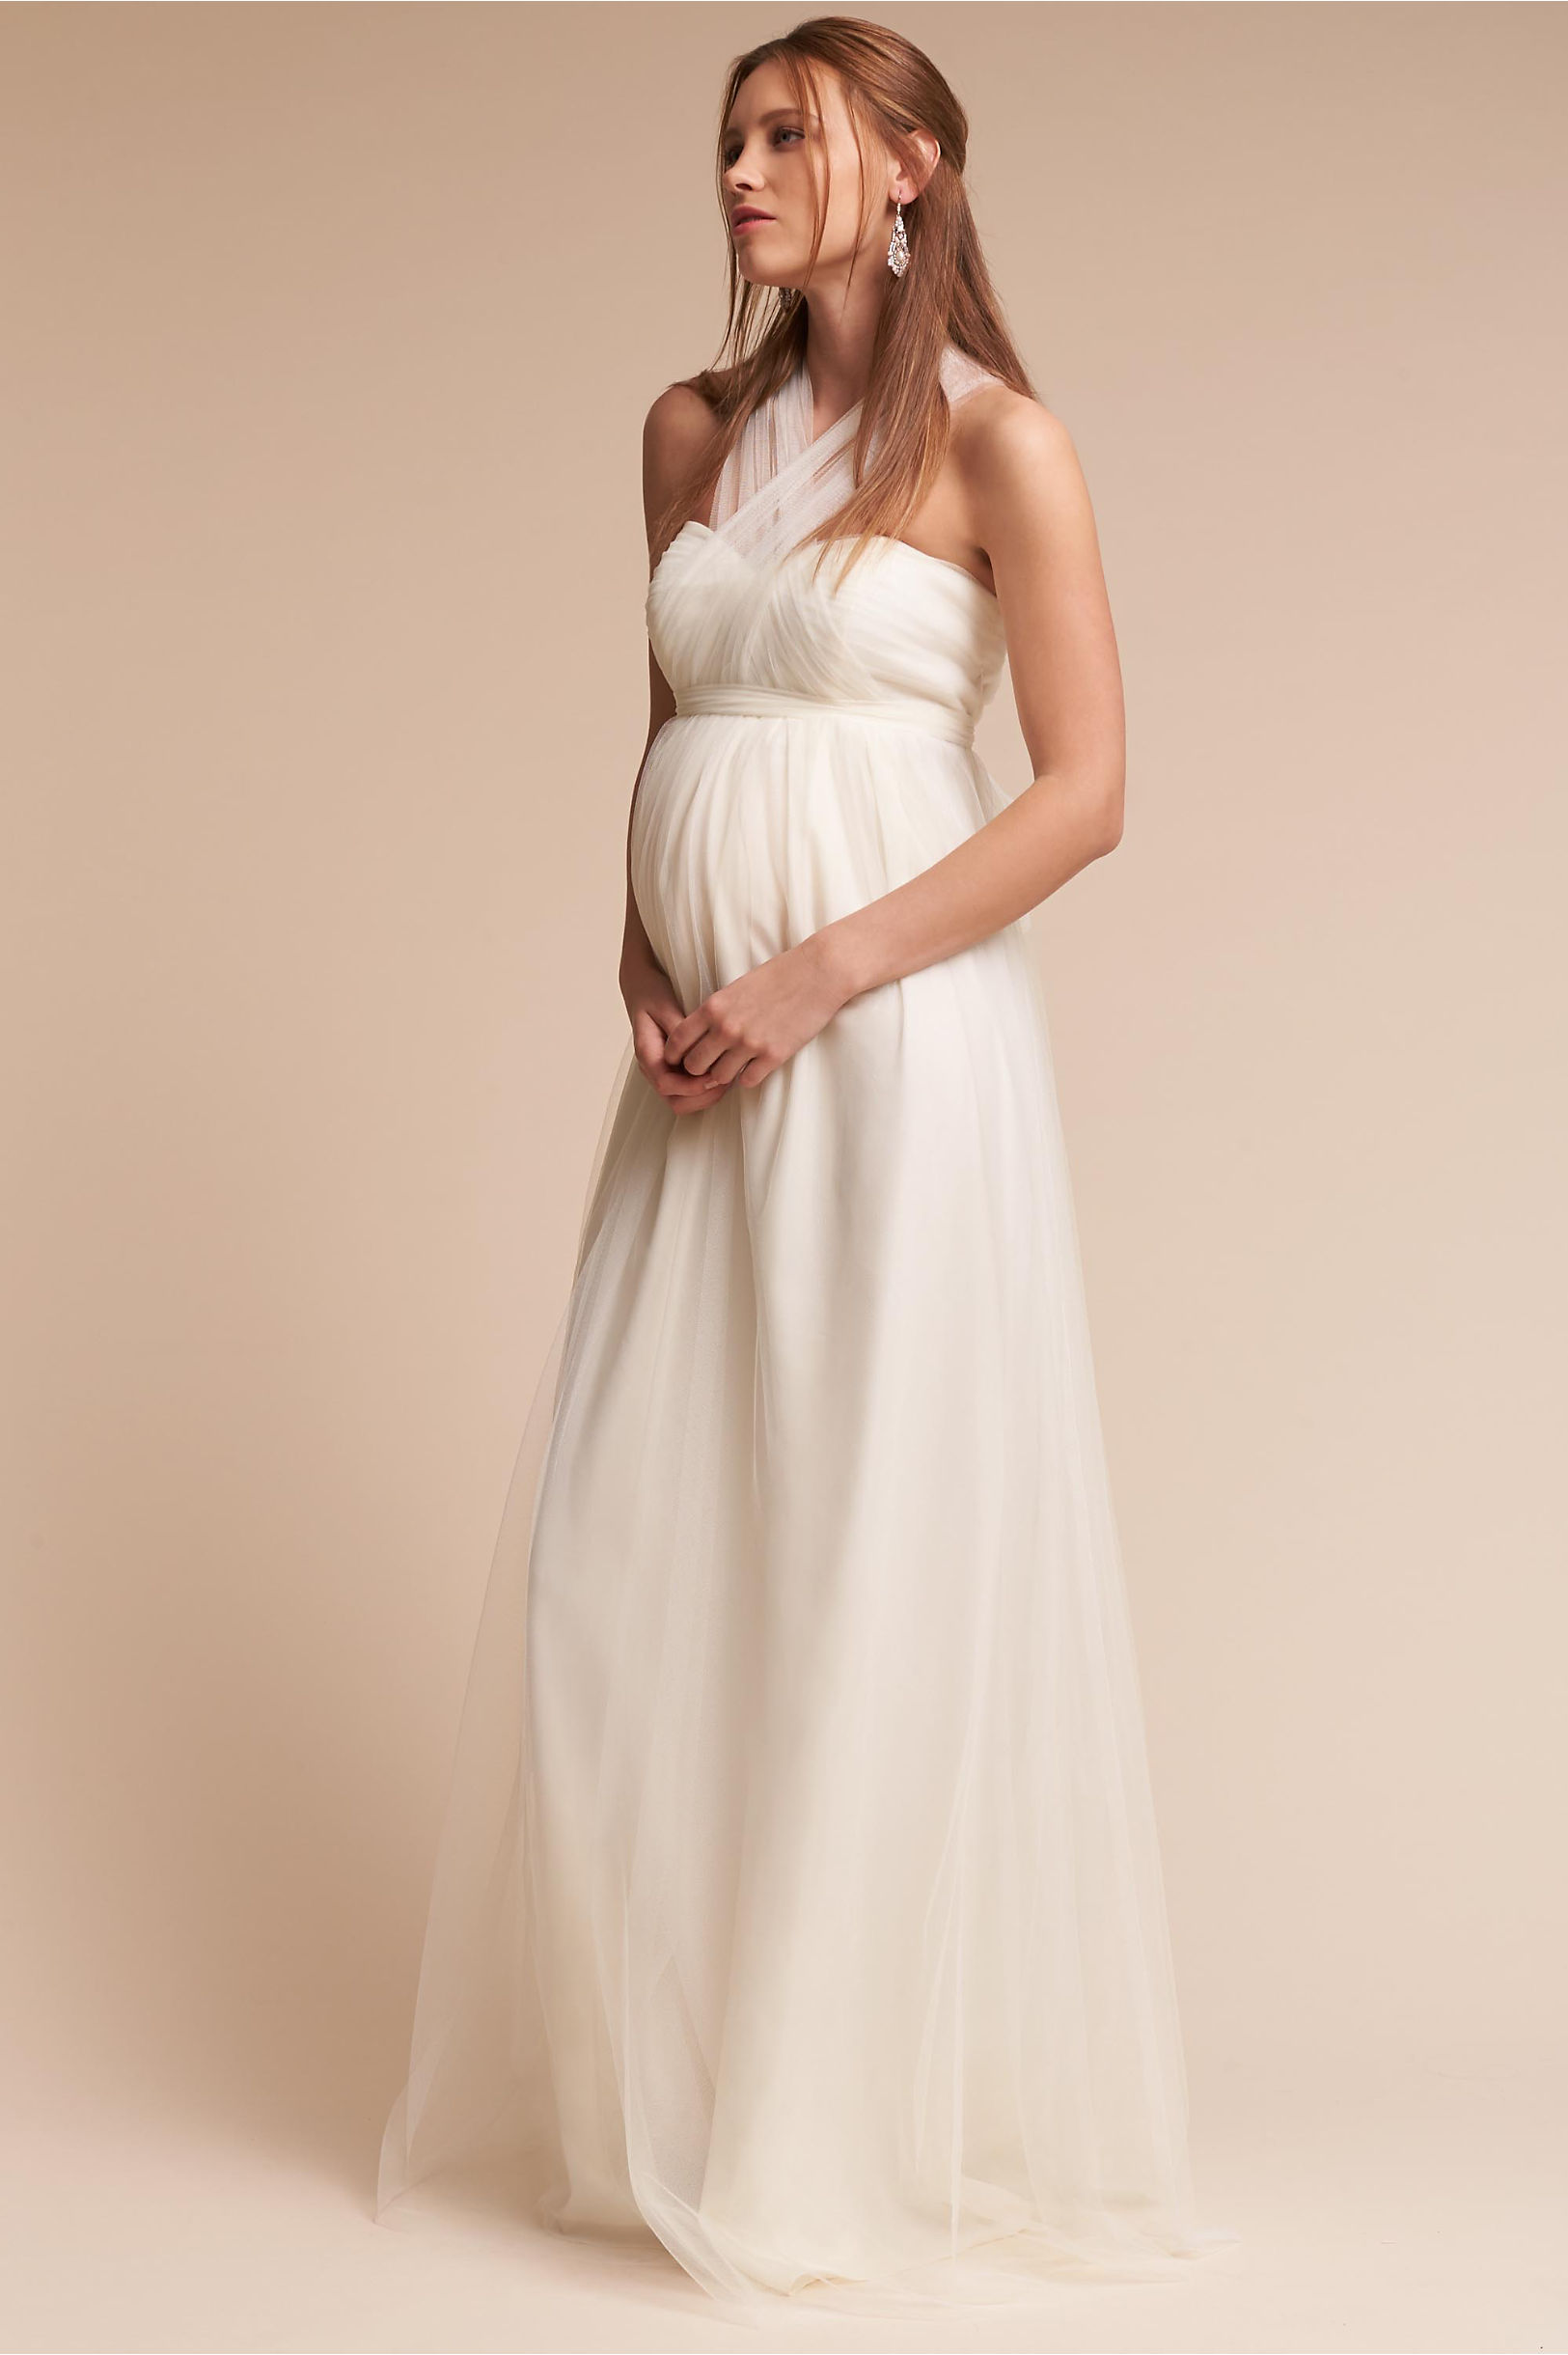 Serafina Maternity Dress Black Cherry in Bridal Party | BHLDN